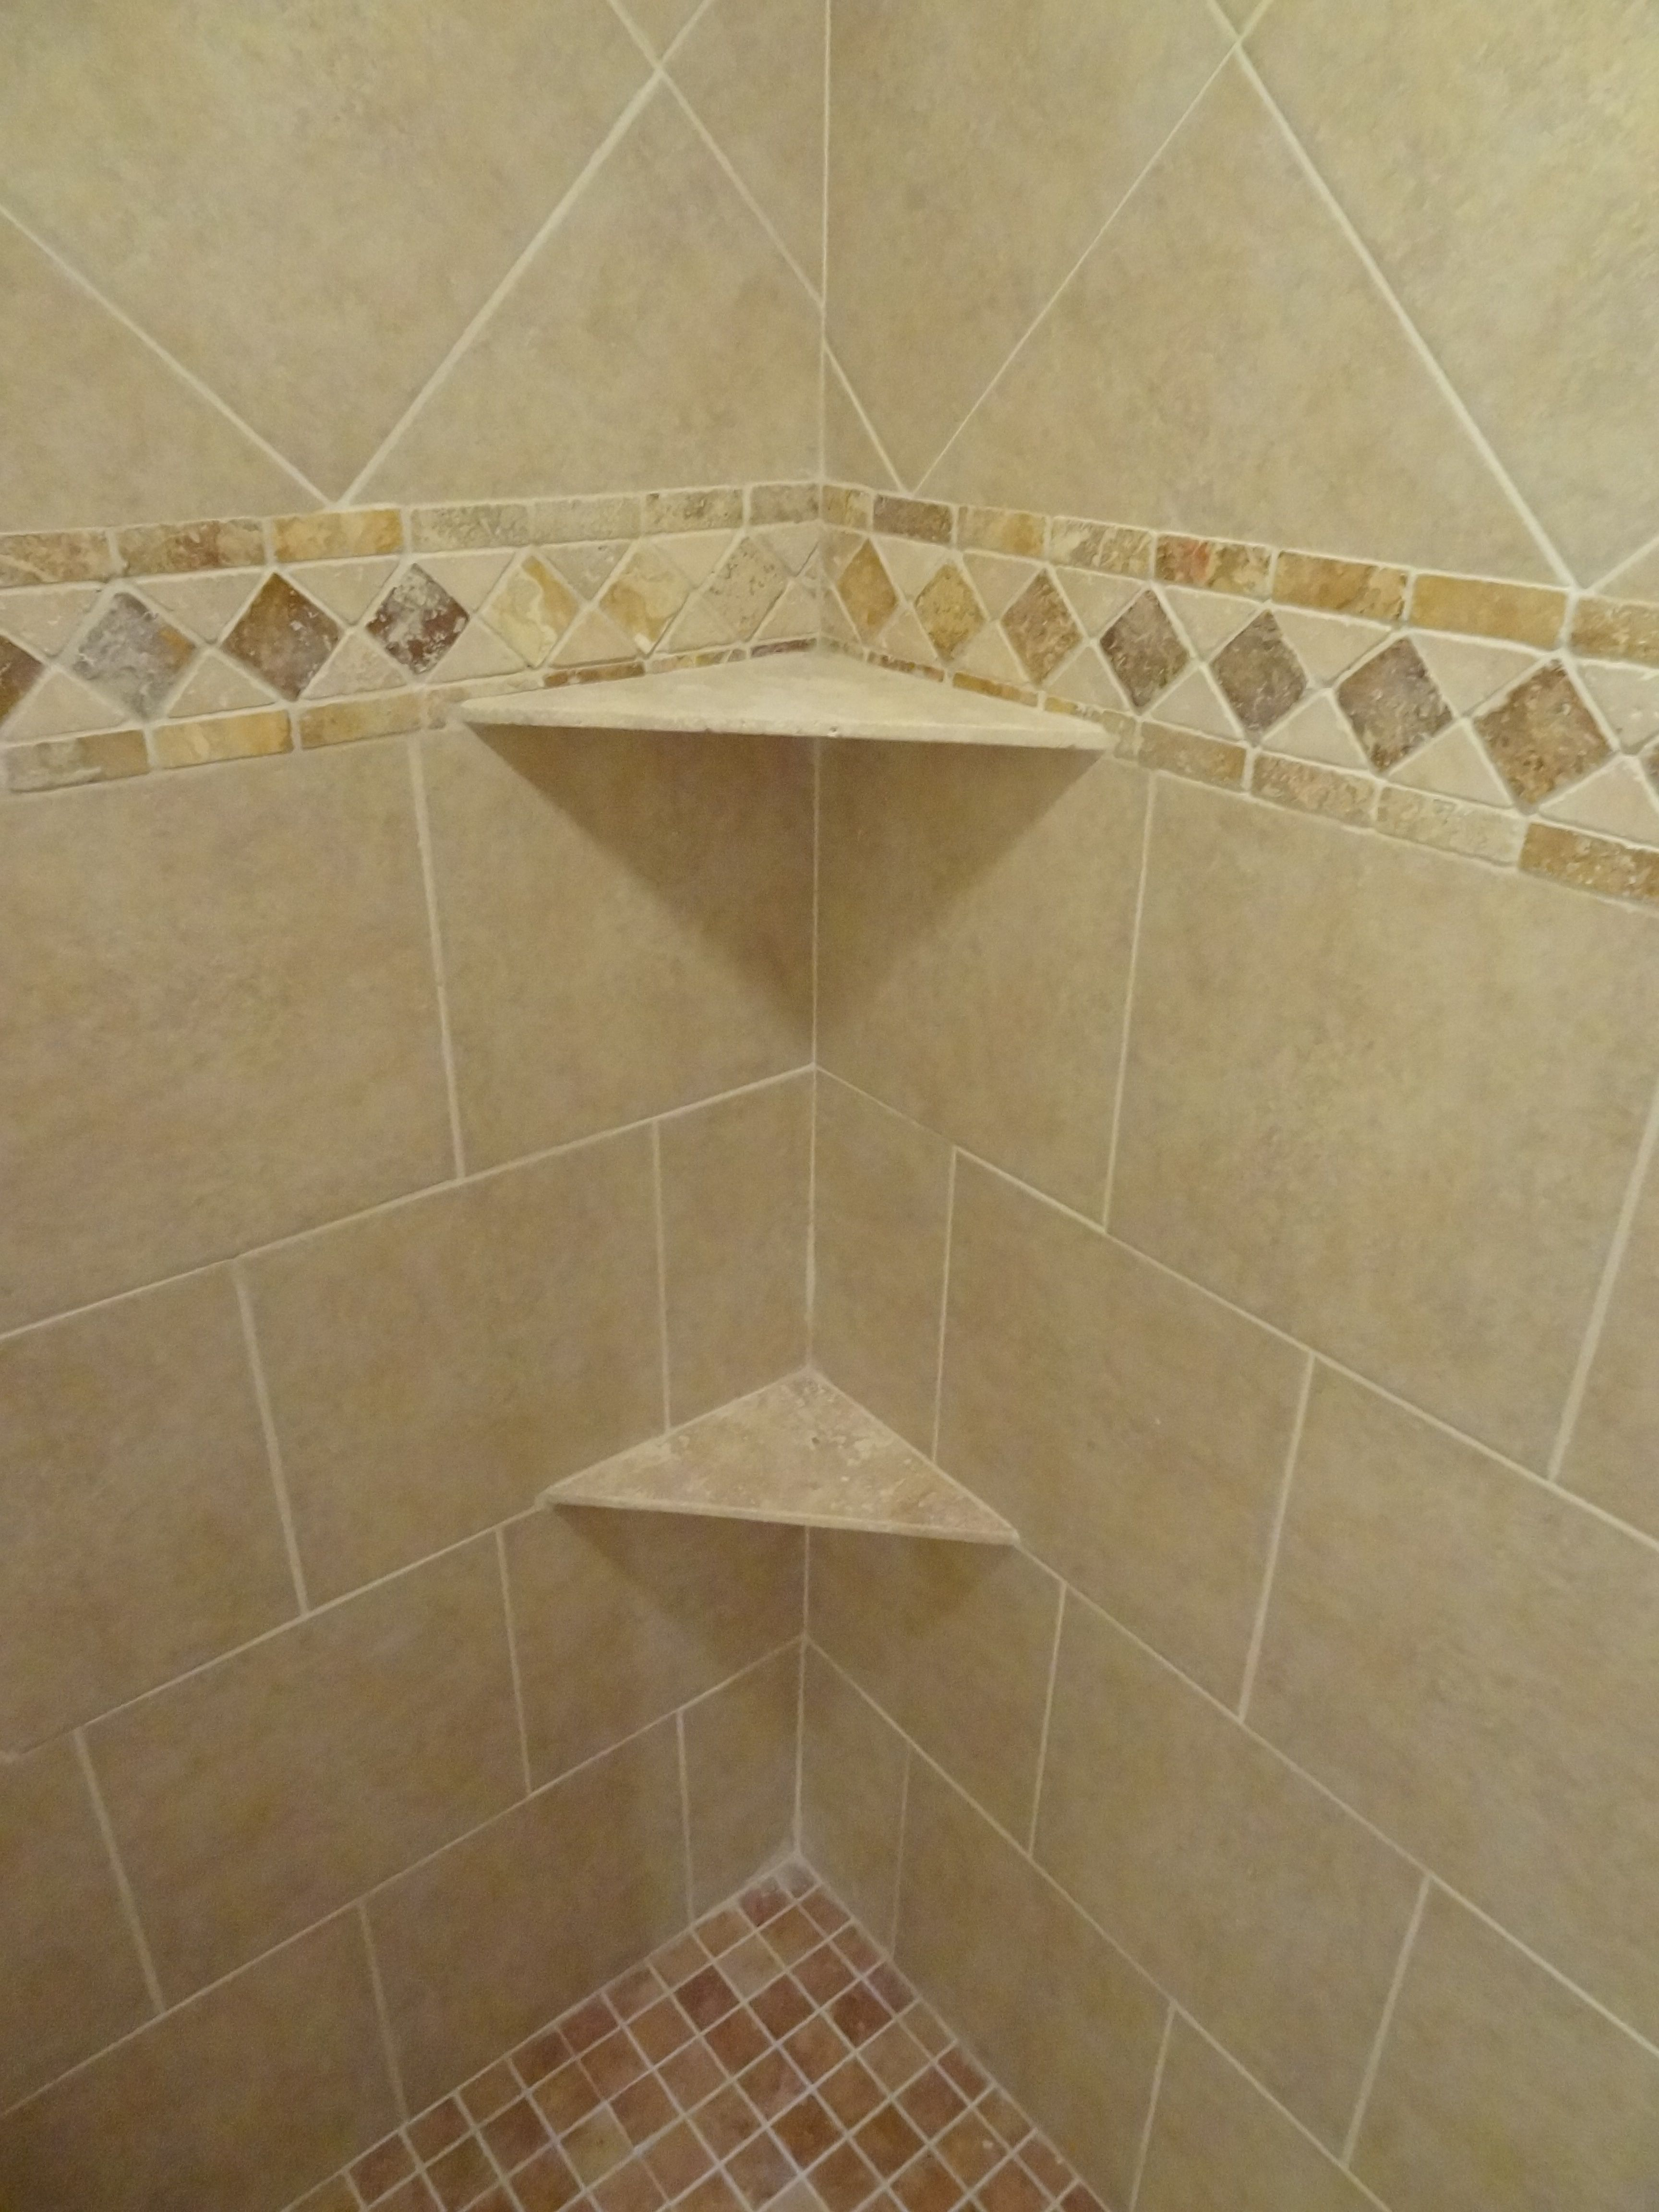 our own ceramic shower wall and floor tile border detail